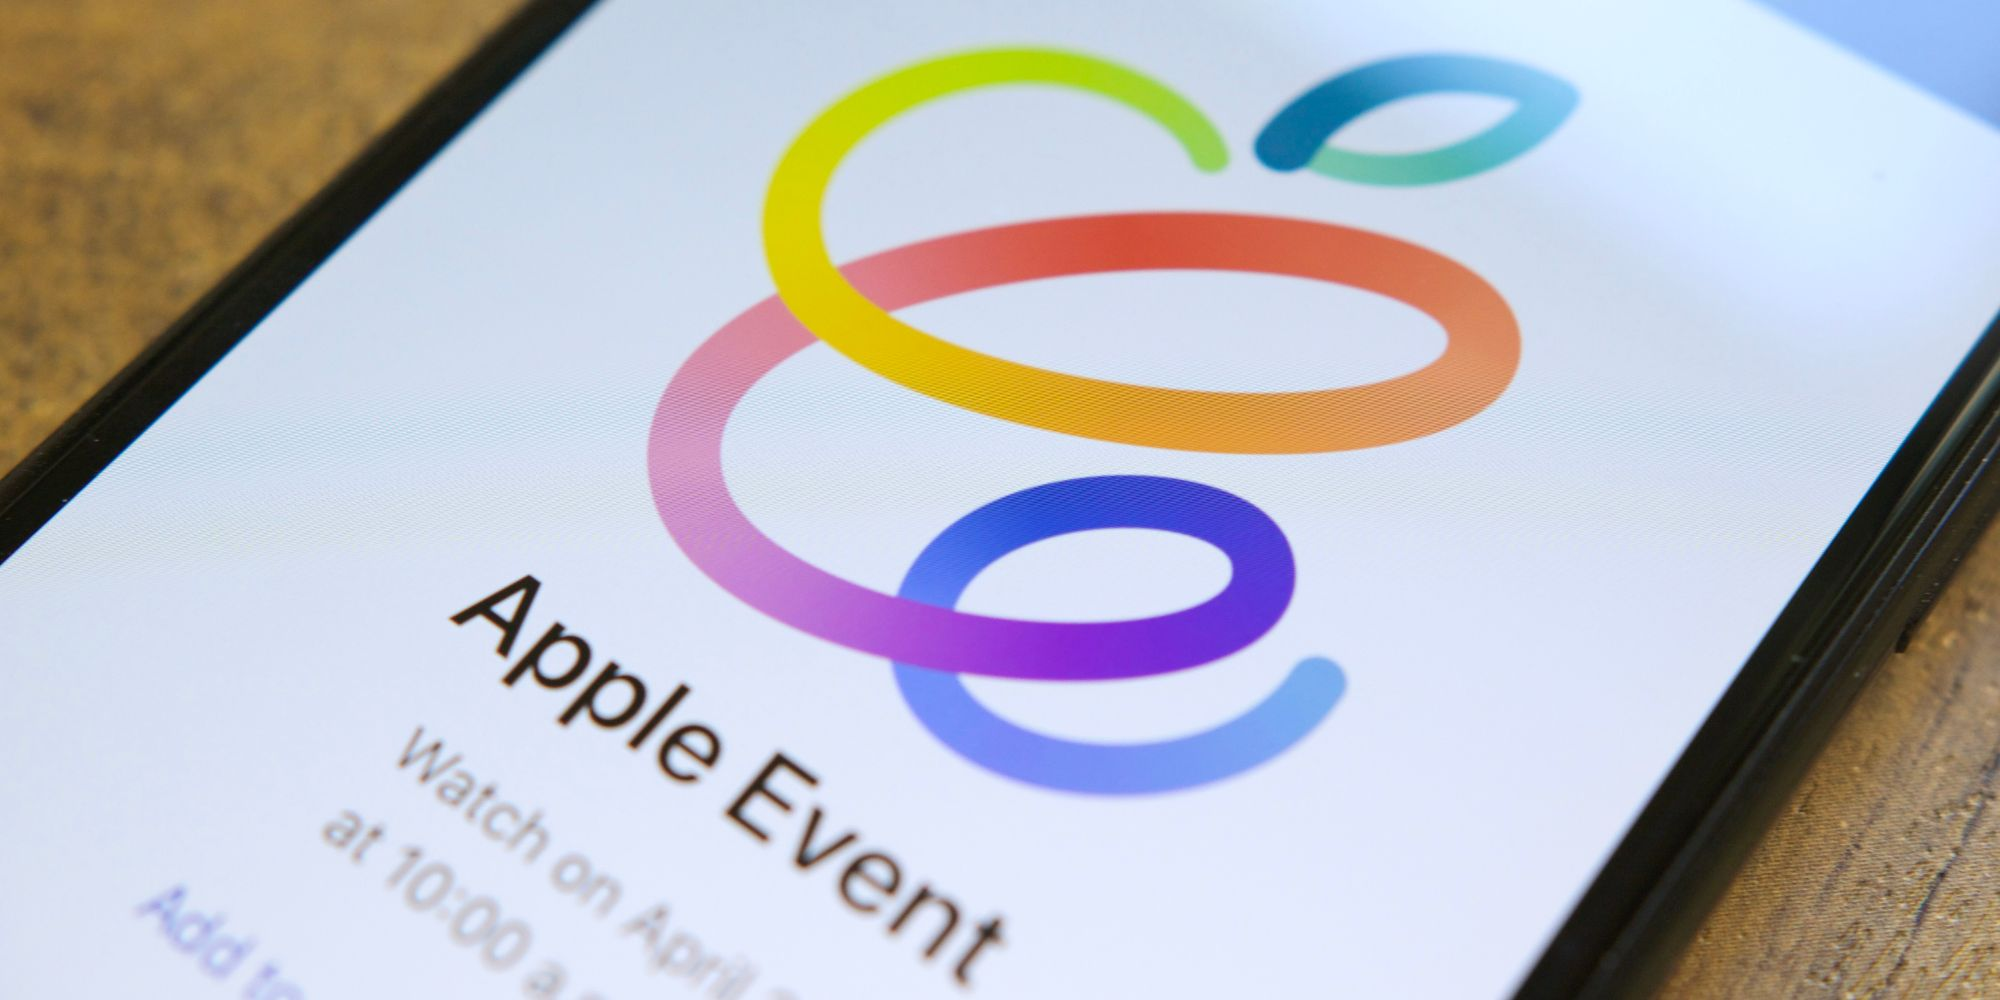 Apple Spring Loaded Event What To Expect On April 20